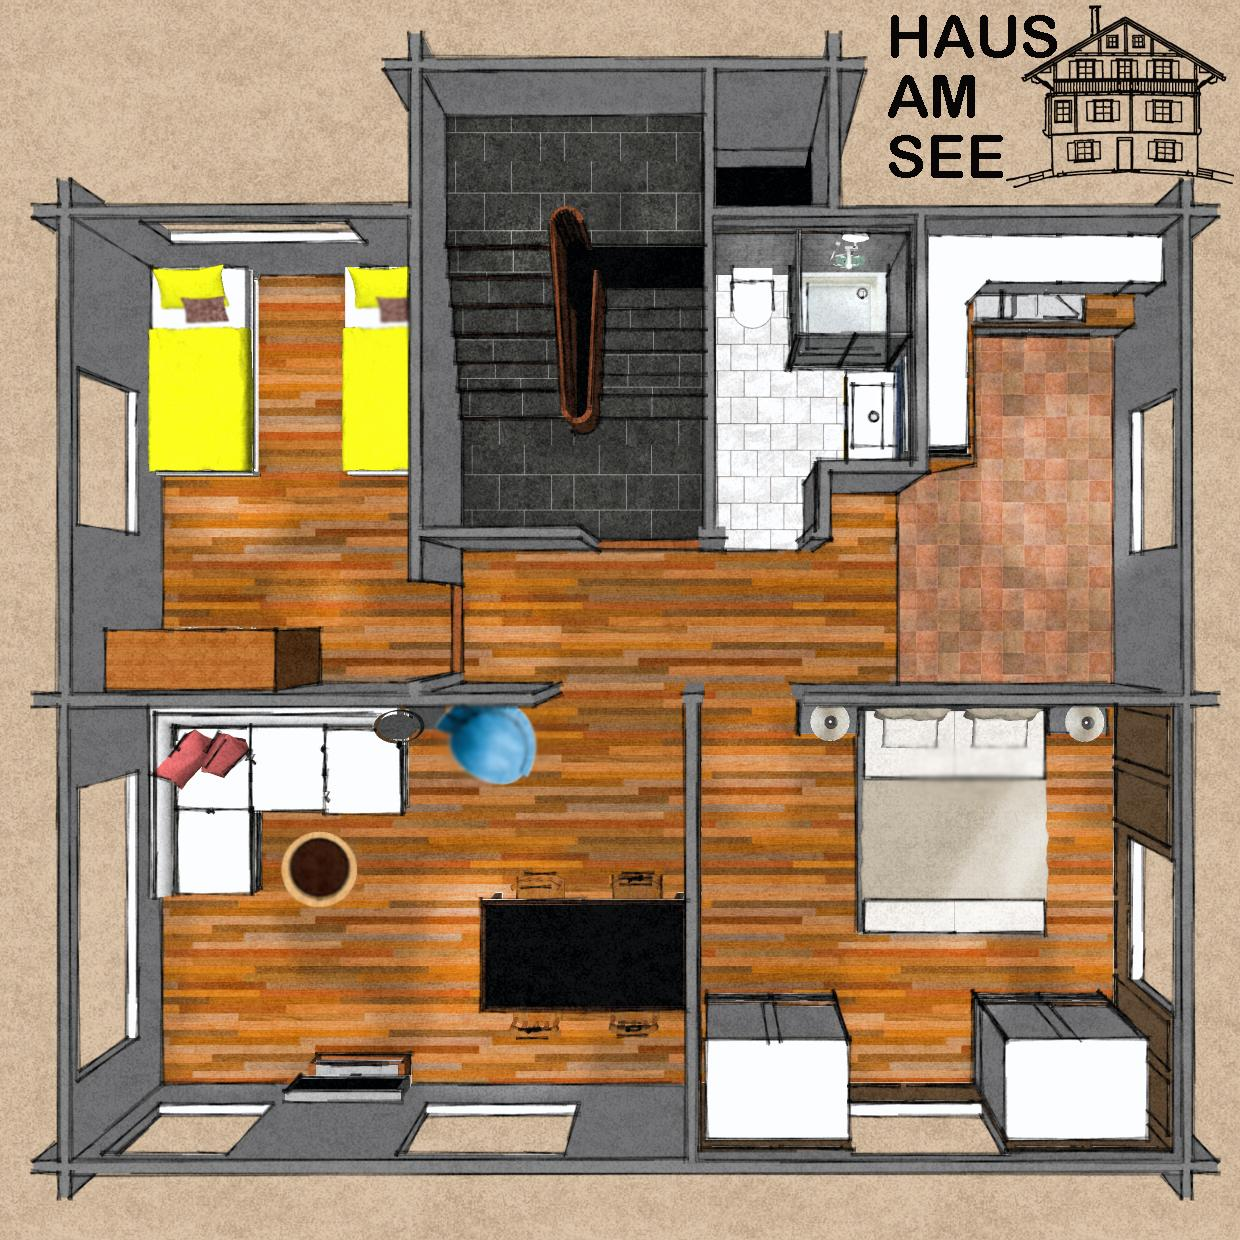 Grundriss / floor plan